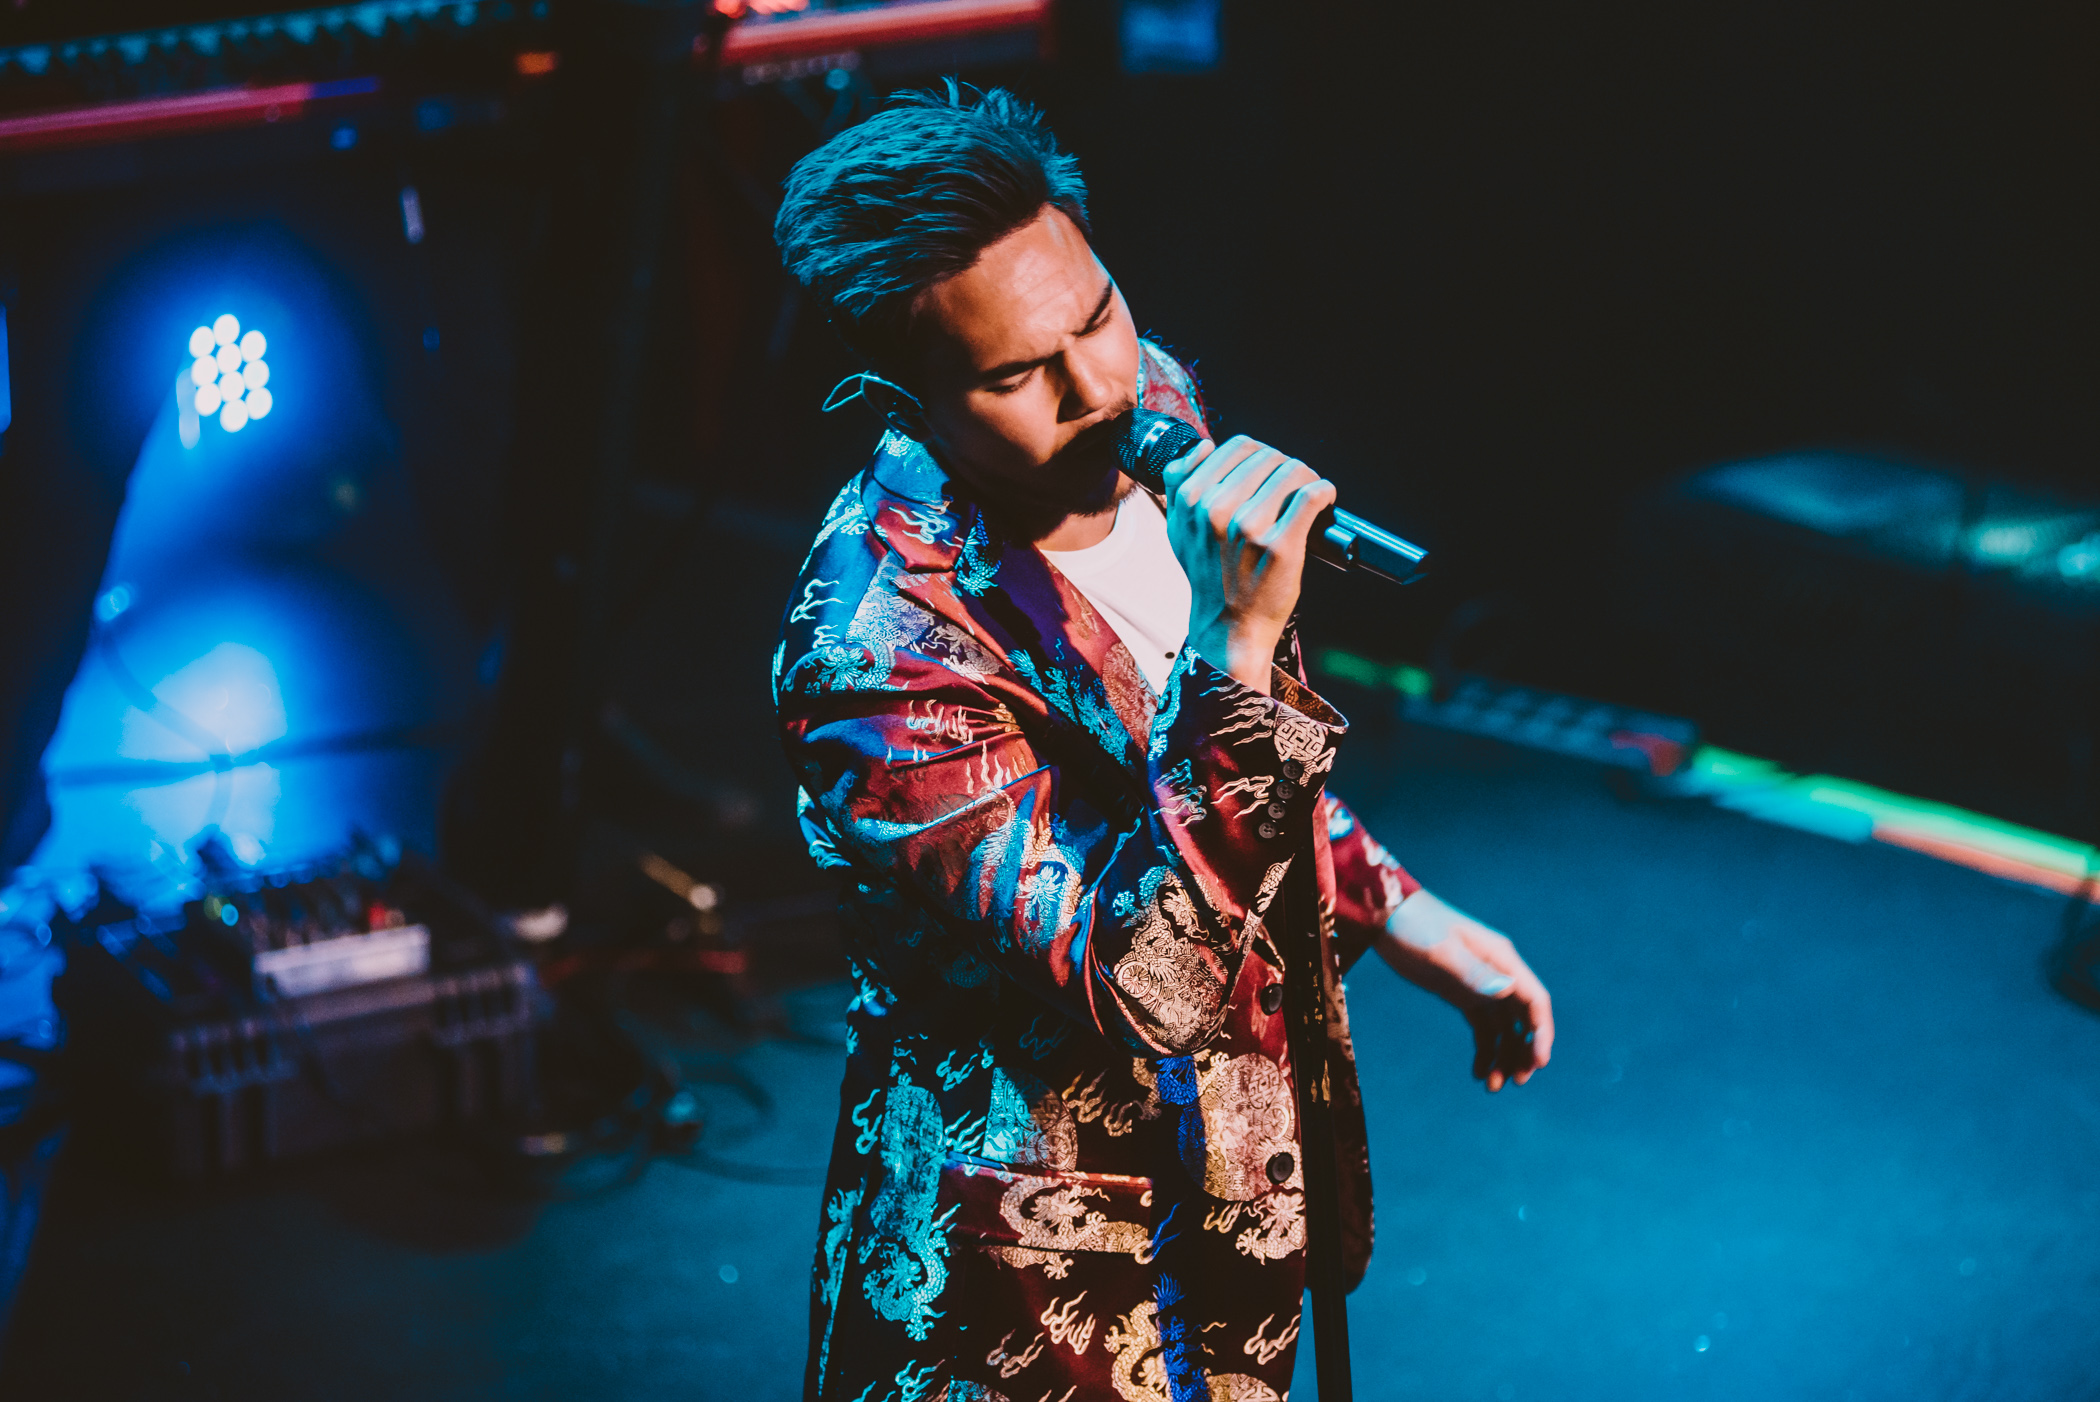 Tyler_Shaw-Venue-Timothy_Nguyen-20190131 (11 of 22).jpg